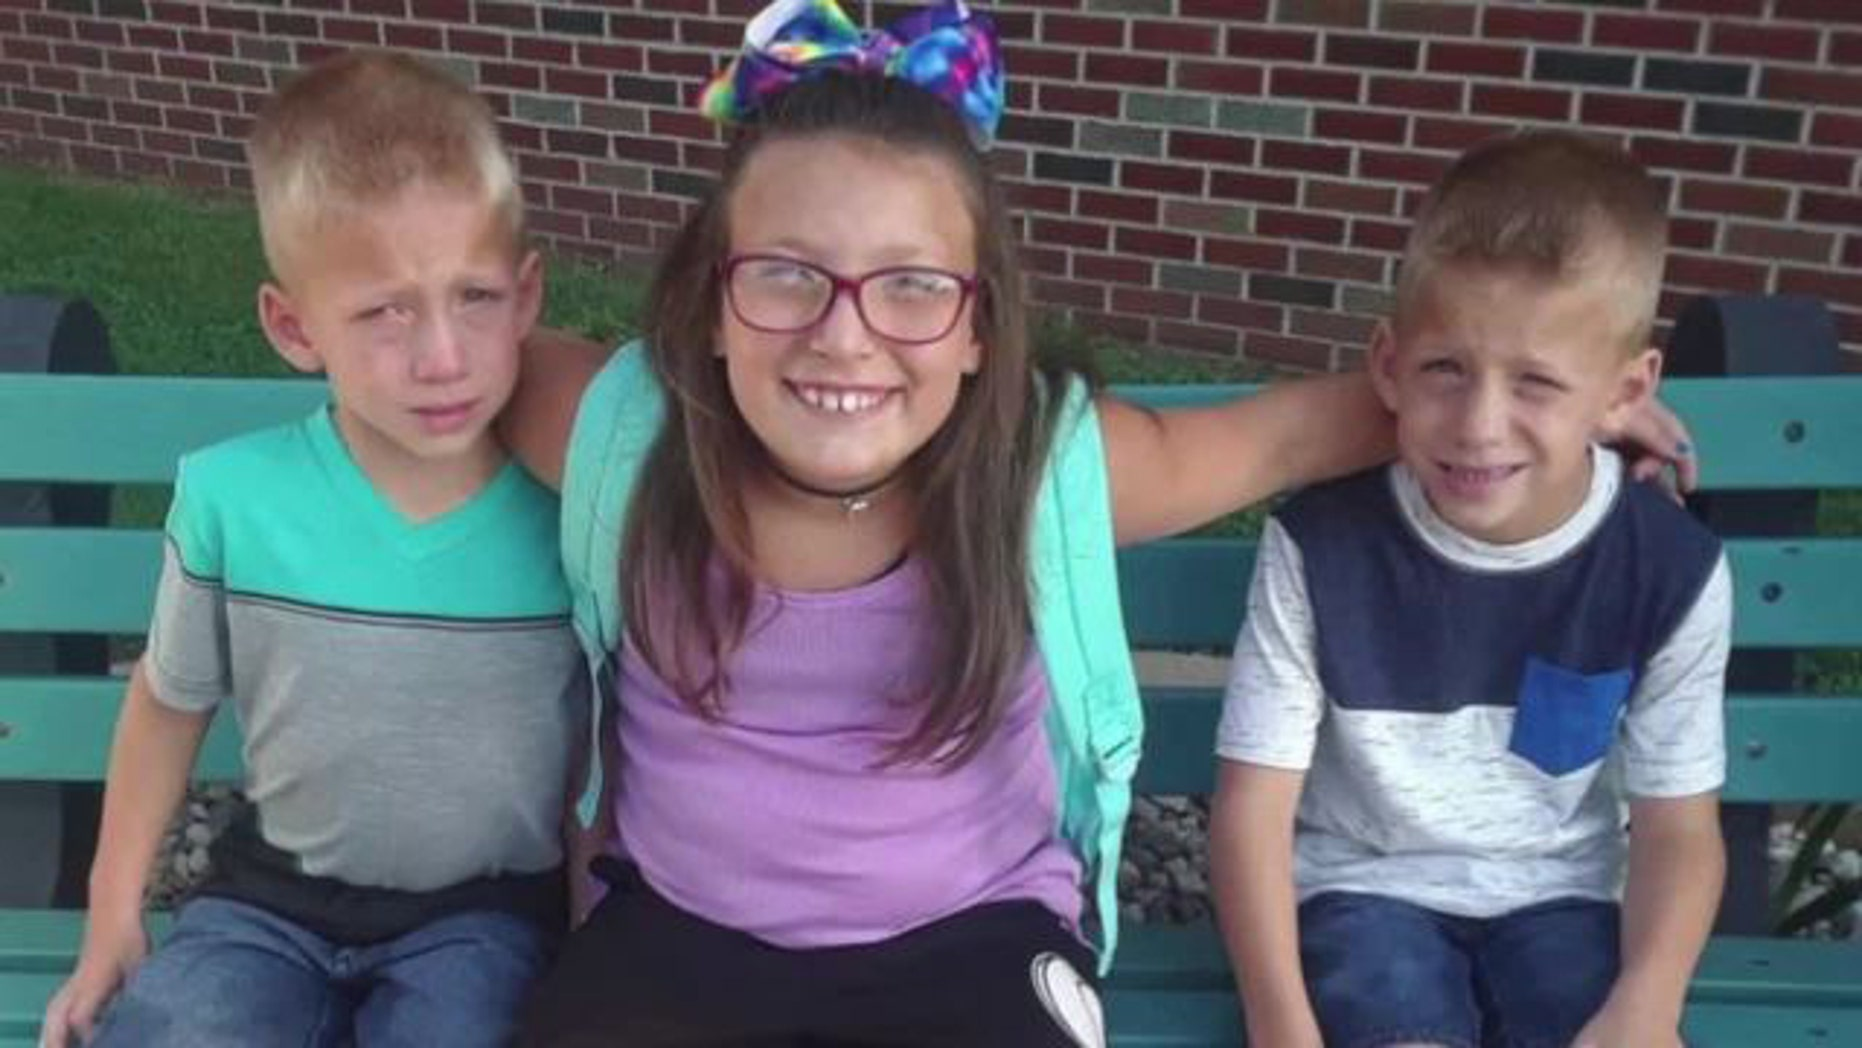 Three young siblings were struck by a vehicle and killed at an Indiana school bus stop on Tuesday morning, police said.